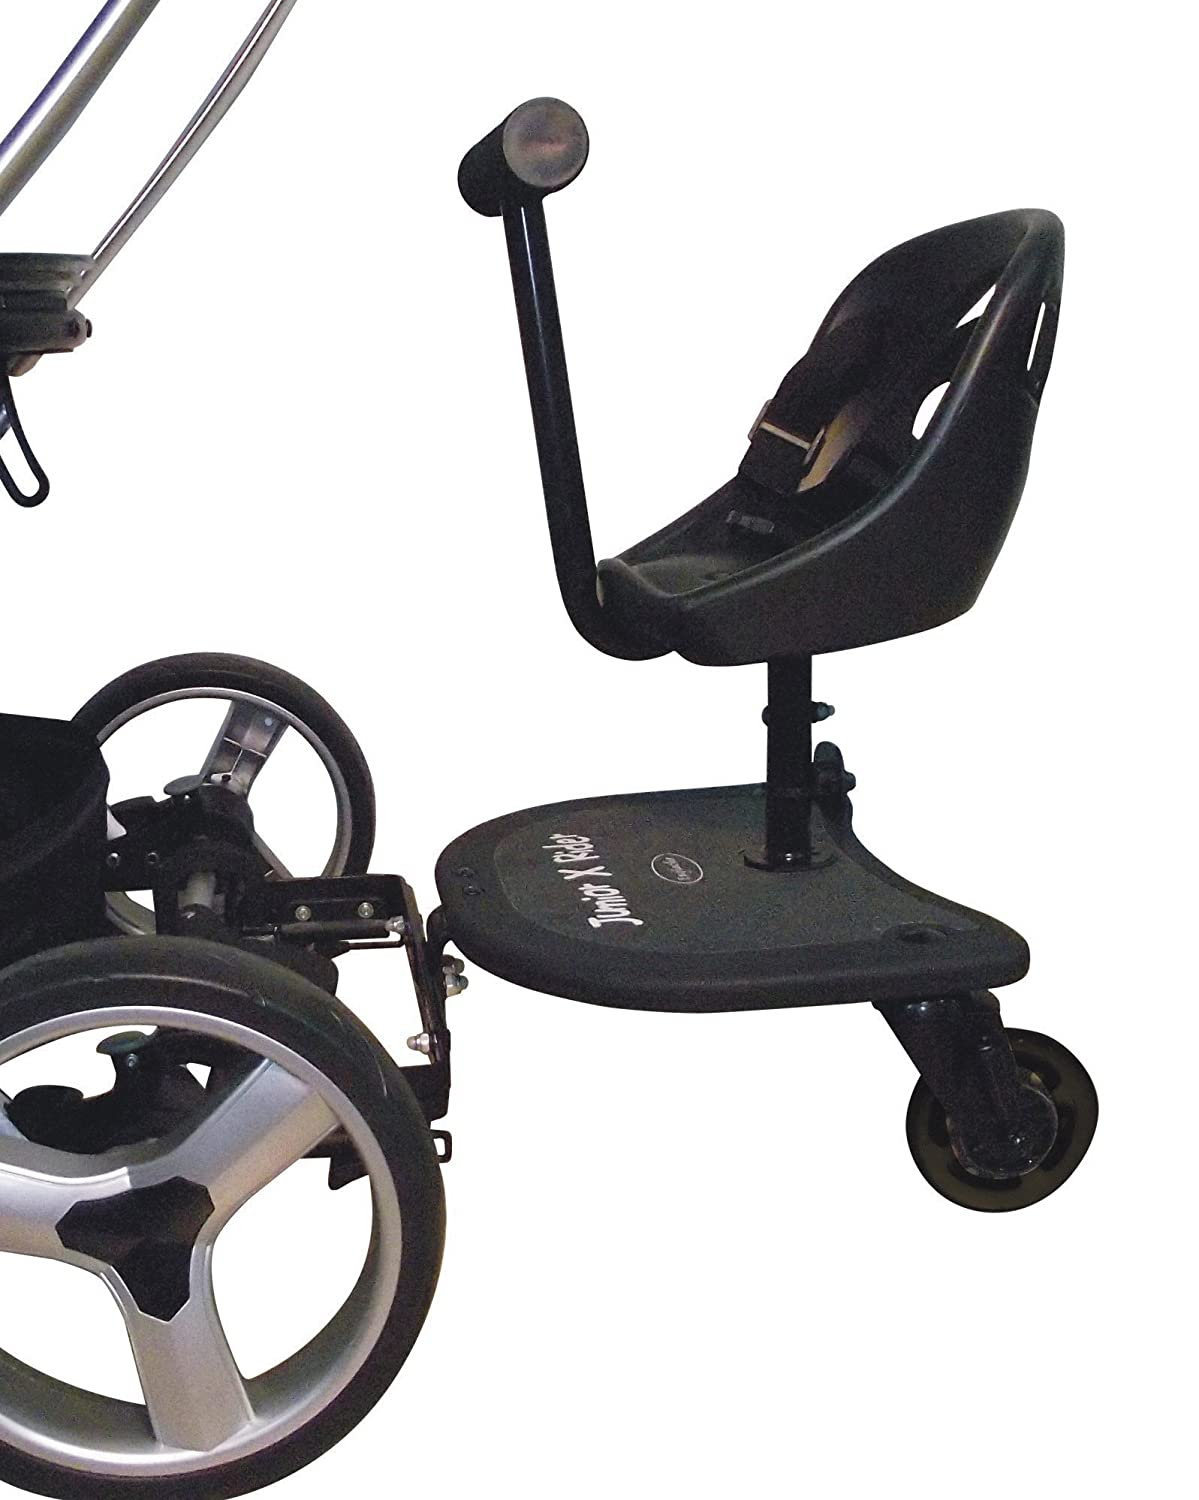 Englacha 2-In-1 Junior X Rider, Black (Discontinued by Manufacturer)